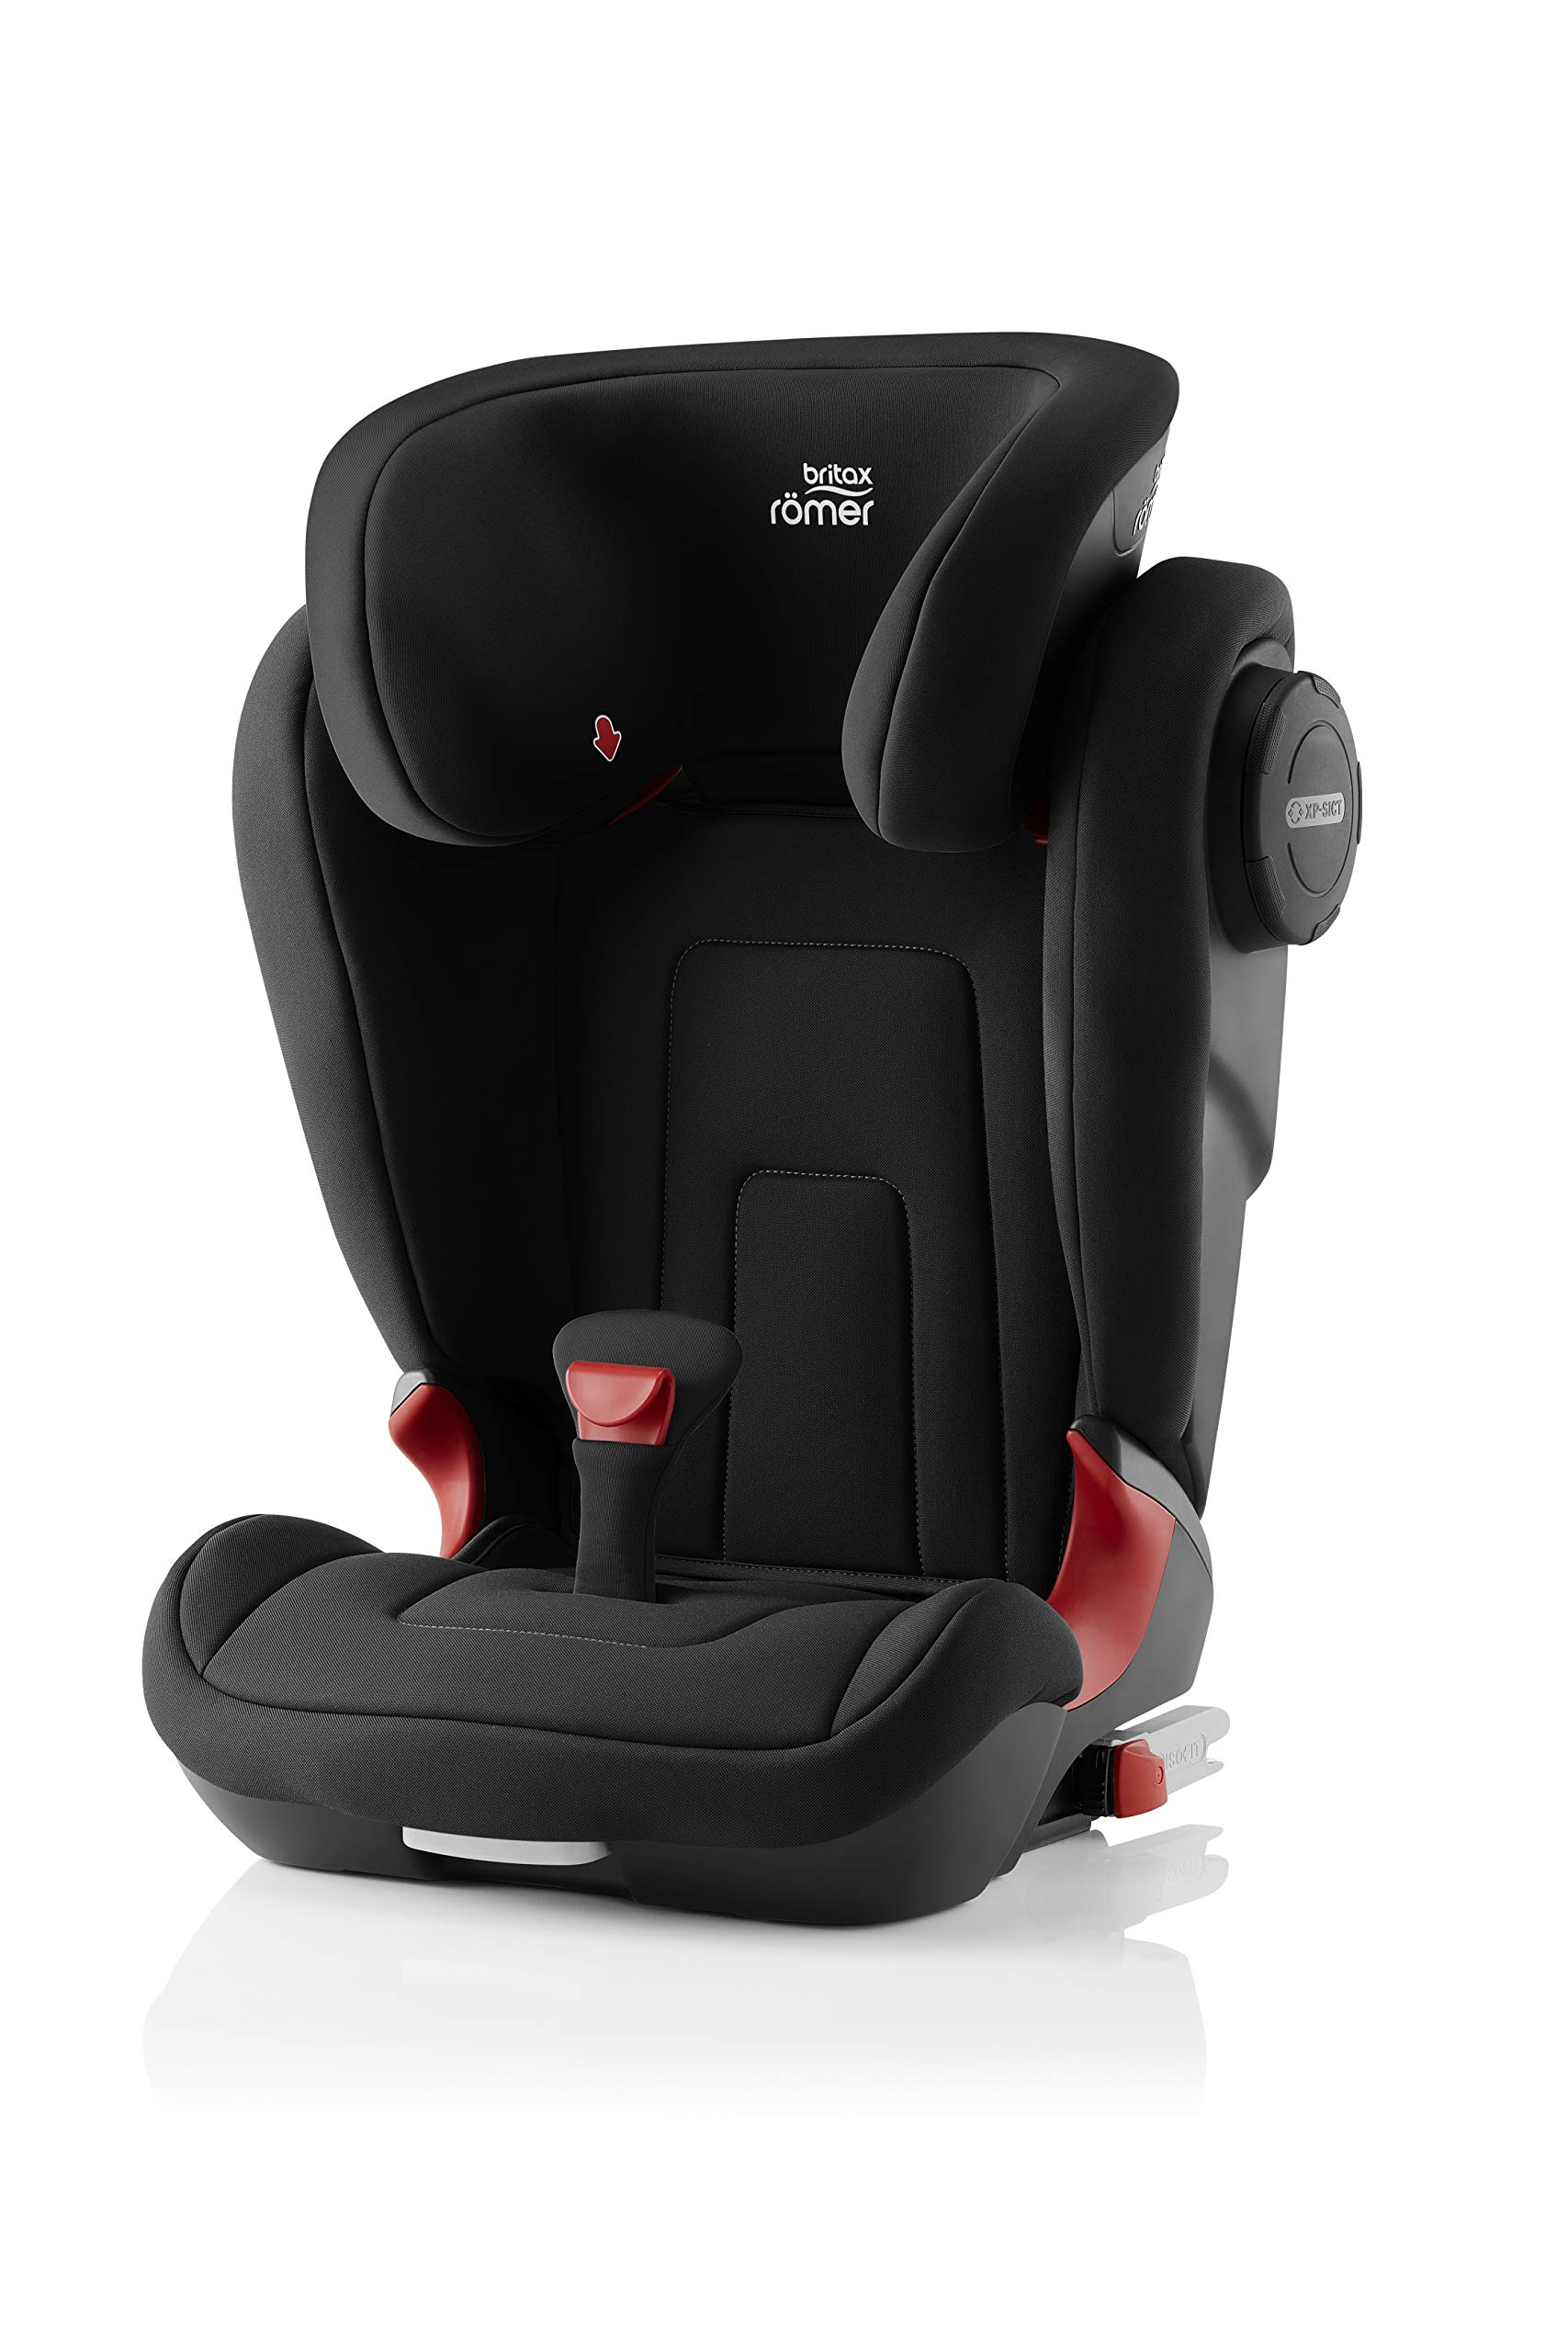 Britax Römer KIDFIX² S Group 2-3 (15-36kg) Car Seat - Cosmos Black  Advanced side impact protection - sict offers superior protection to your child in the event of a side collision. reducing impact forces by minimising the distance between the car and the car seat. Secure guard - helps to protect your child's delicate abdominal area by adding an extra - a 4th - contact point to the 3-point seat belt. High back booster - protects your child in 3 ways: provides head to hip protection; belt guides provide correct positioning of the seat belt and the padded headrest provides safety and comfort. 1